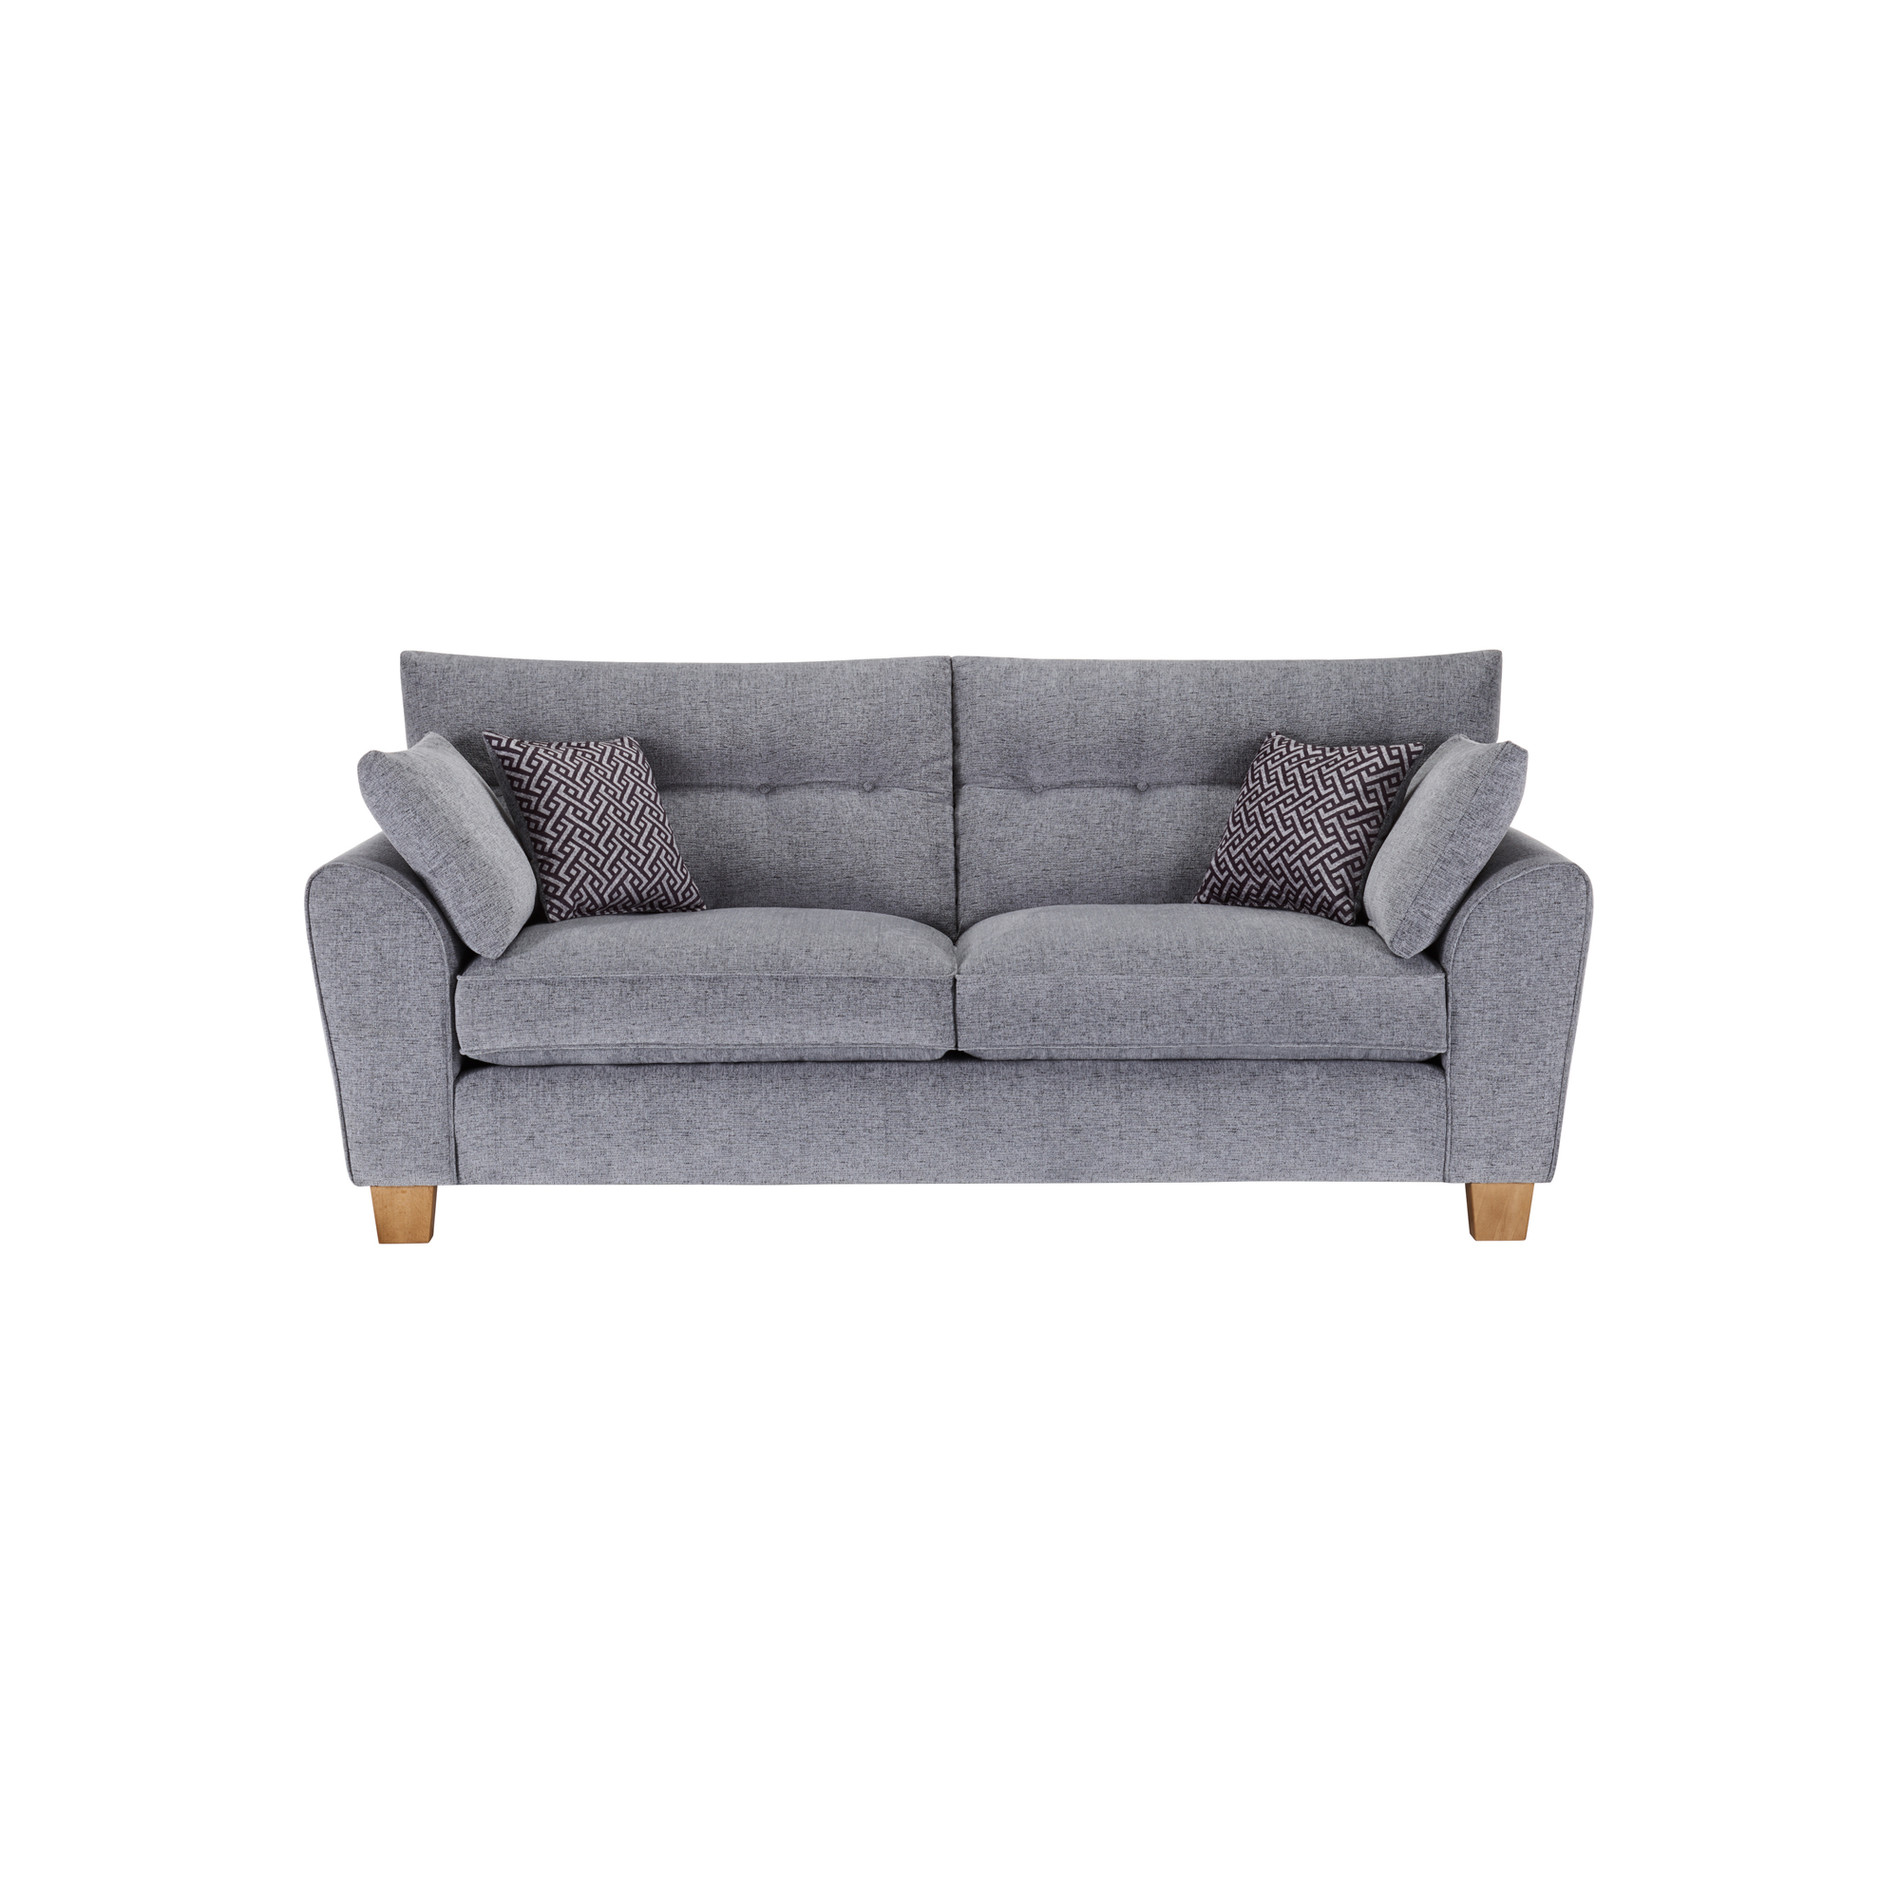 Brooke 3 Seater Sofa in Grey Grey Scatters